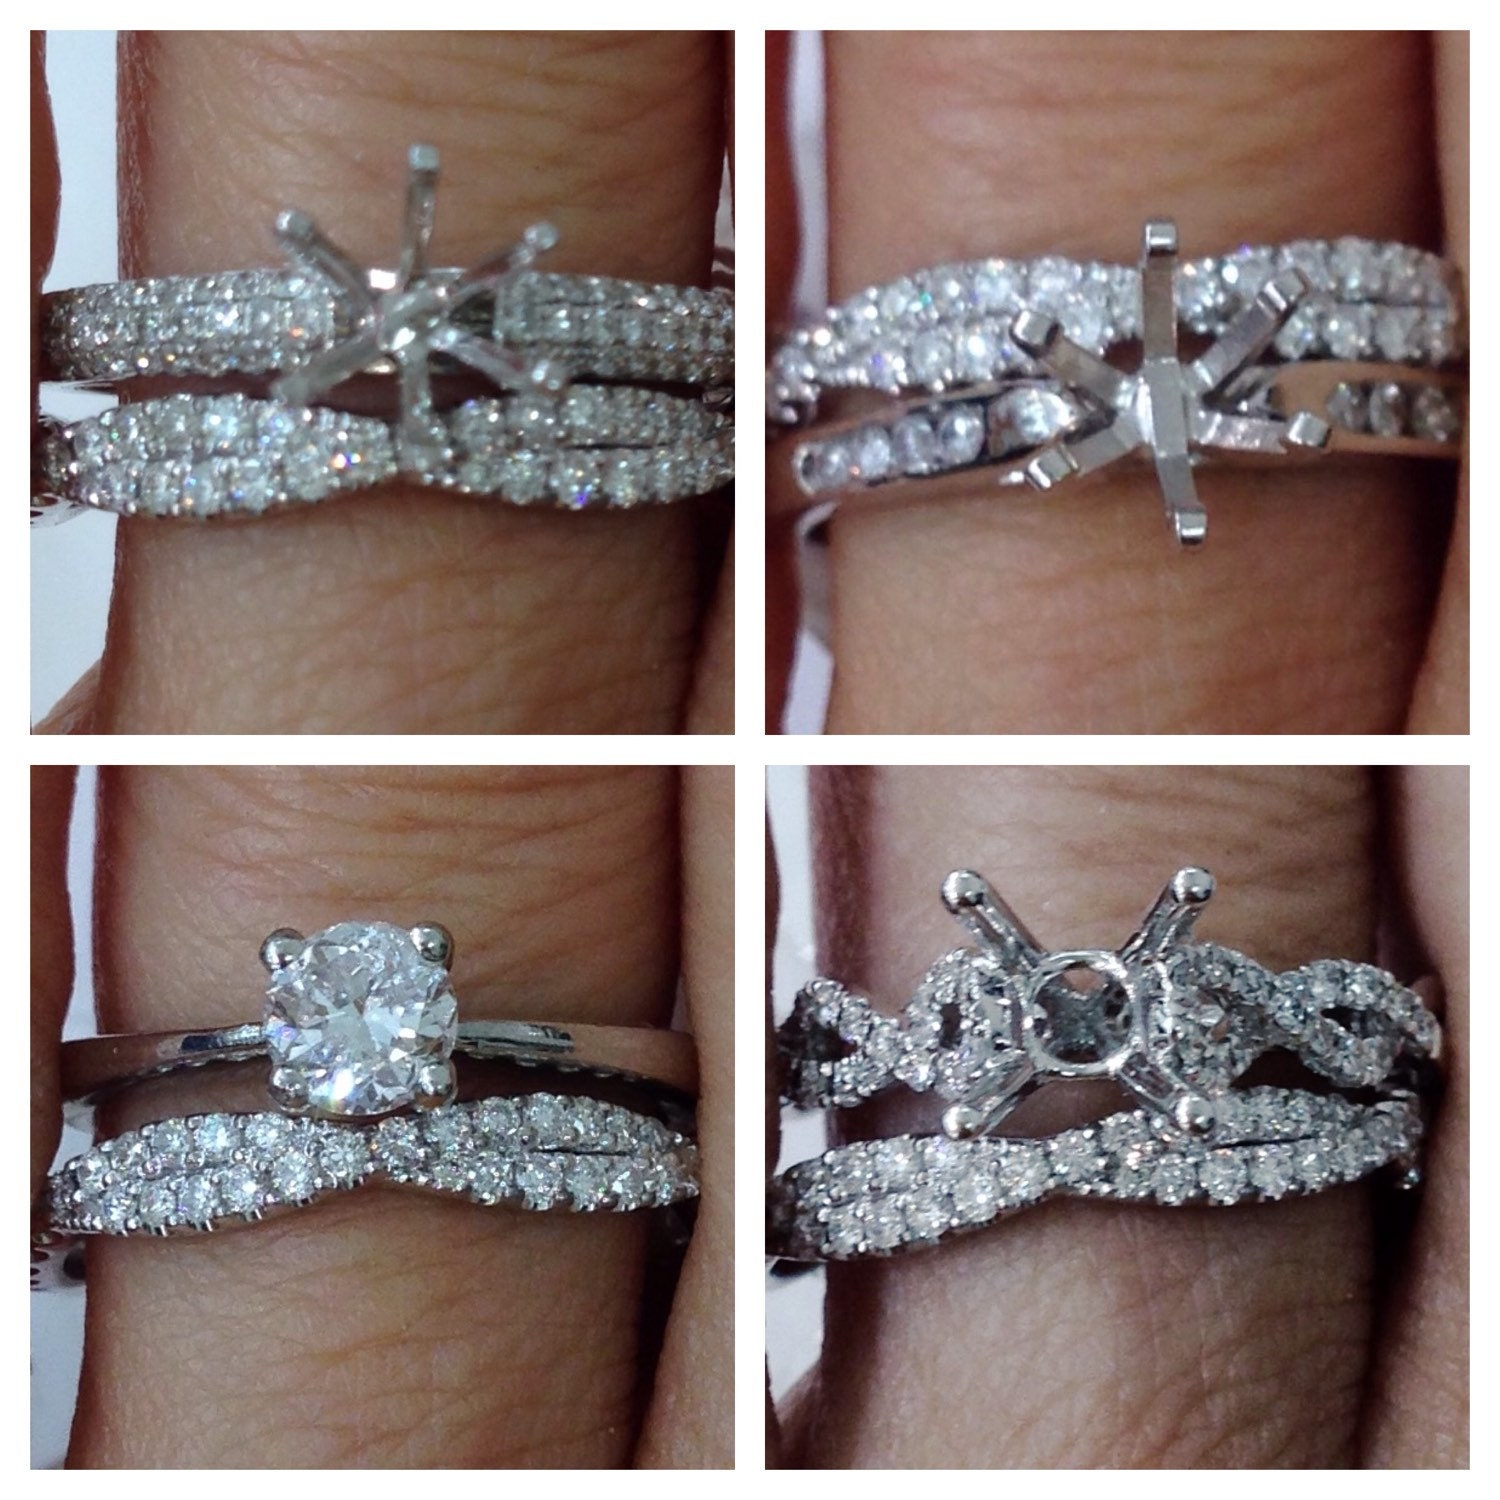 spring diamond of collar com our engagement rope prongs collection awesome wedding with contemporary stone and infinity ring new for rikof band danica twist lovely three